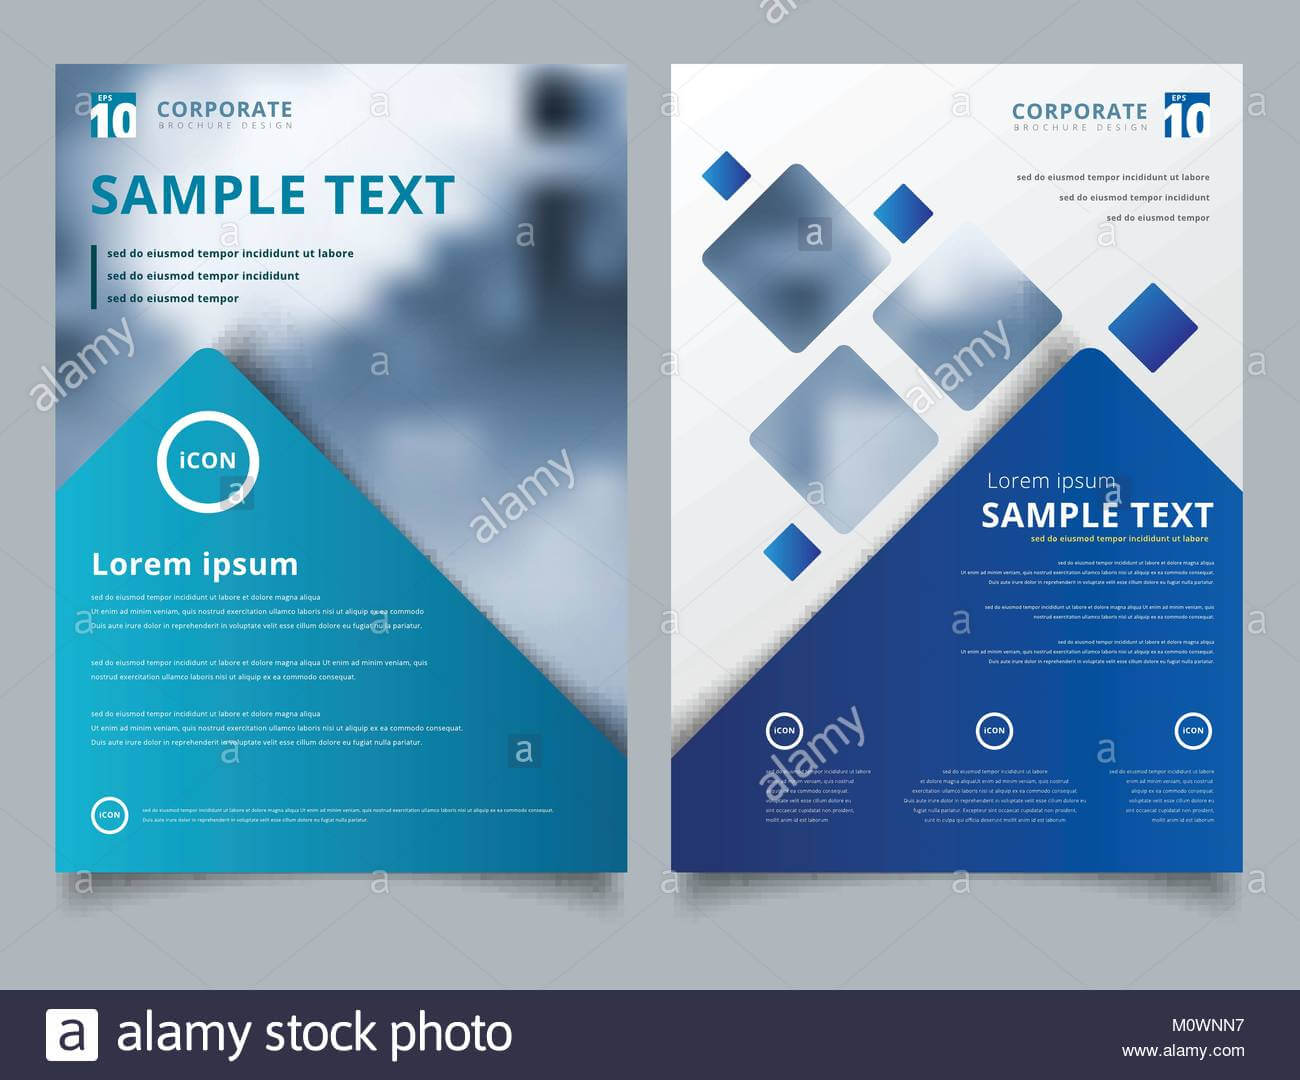 Free Poster Design Templates Illustrator With Scientific Throughout Free Illustrator Brochure Templates Download